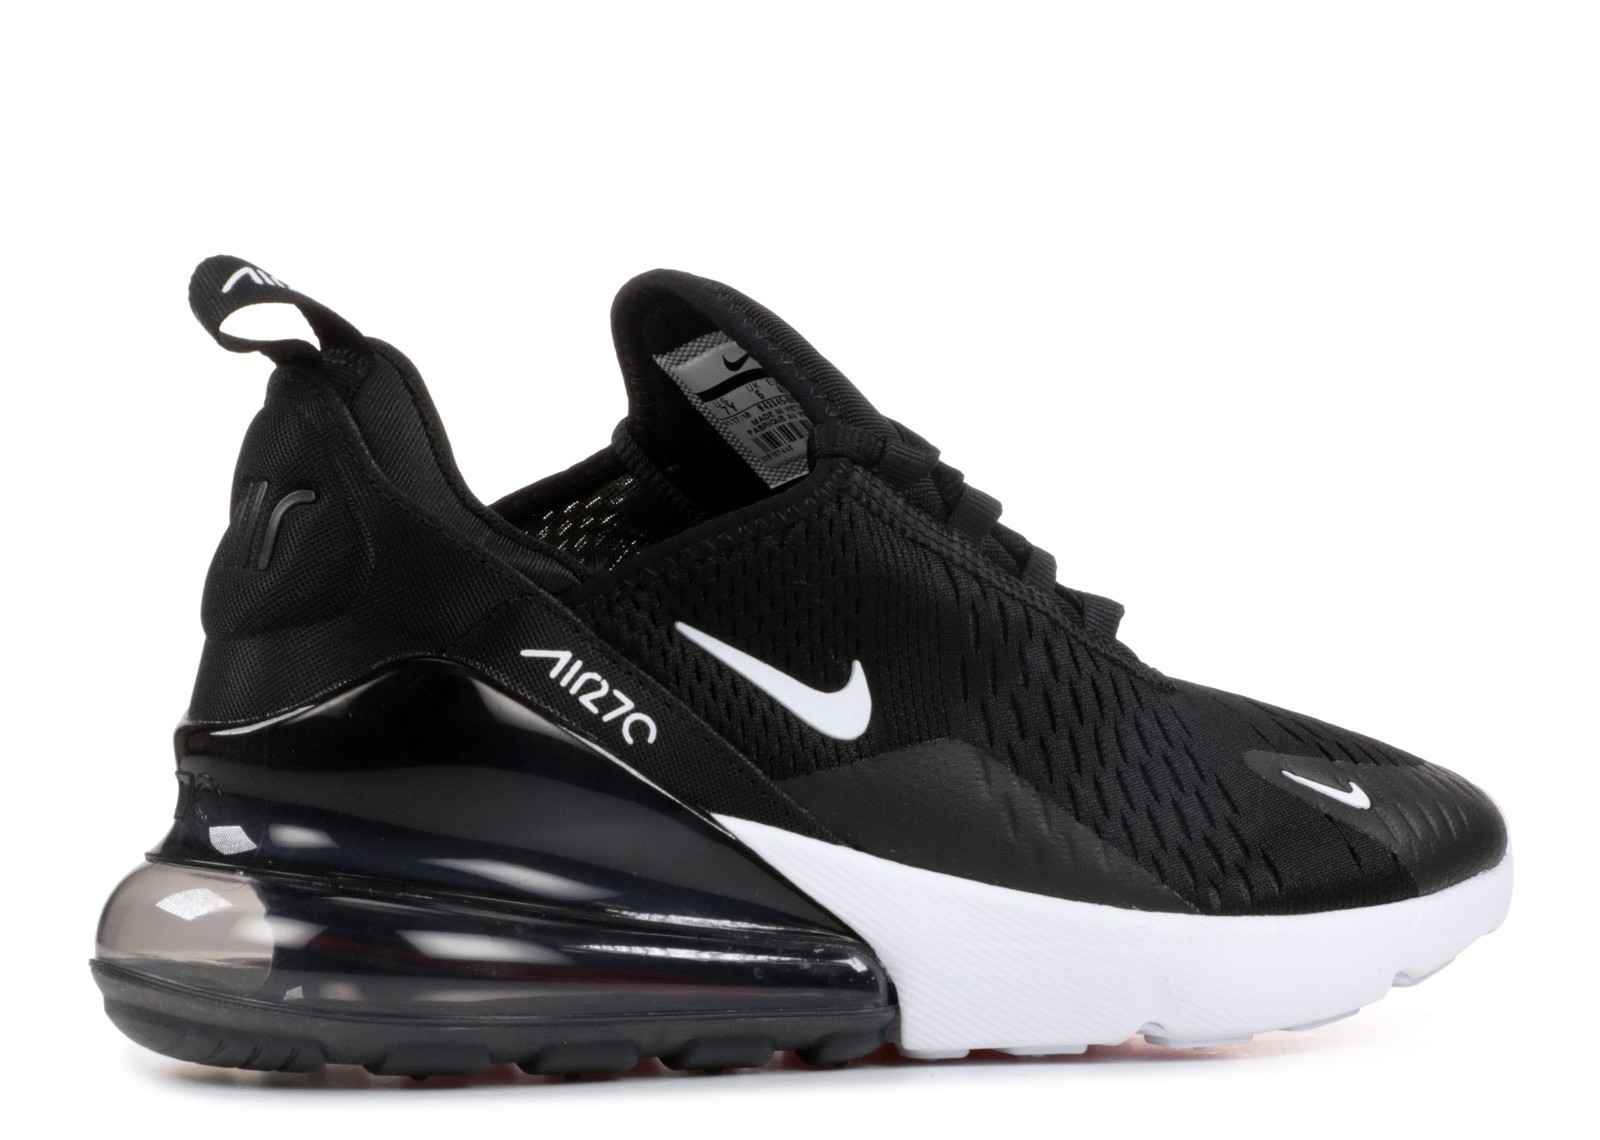 Nike Air Max 270 Gs White Black Anthracite 943345 001